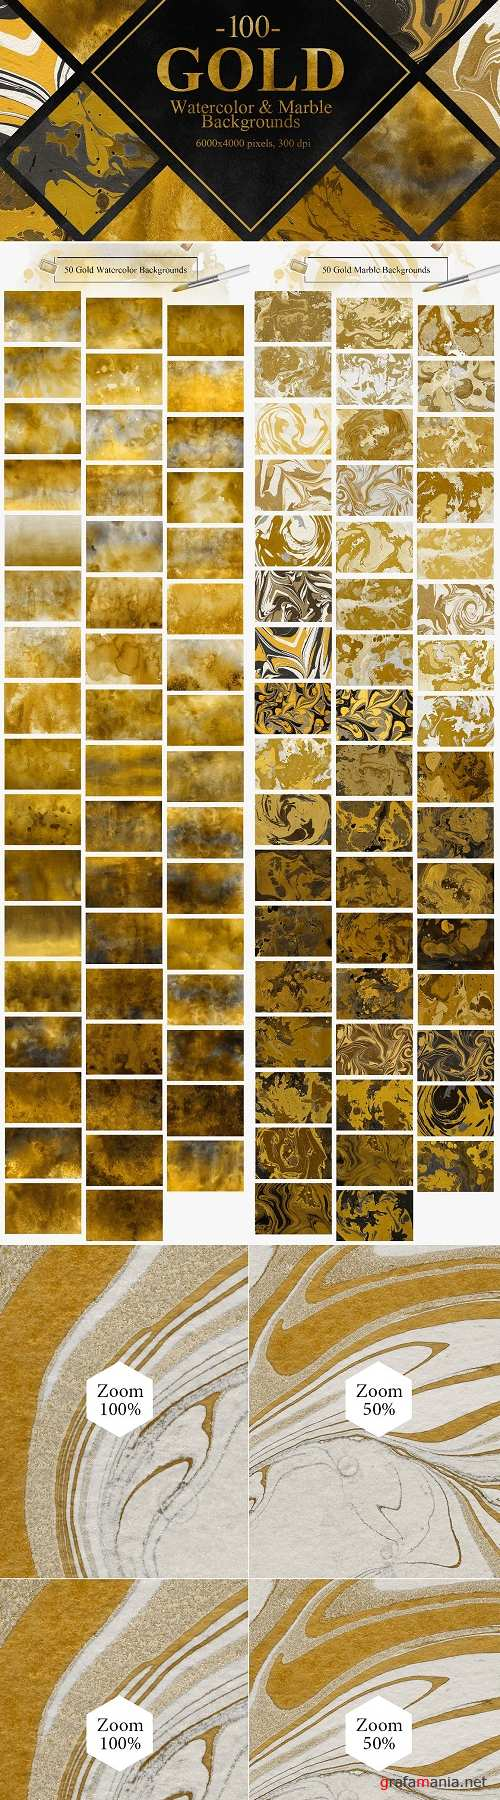 Gold Watercolor & Marble Backgrounds 2335814